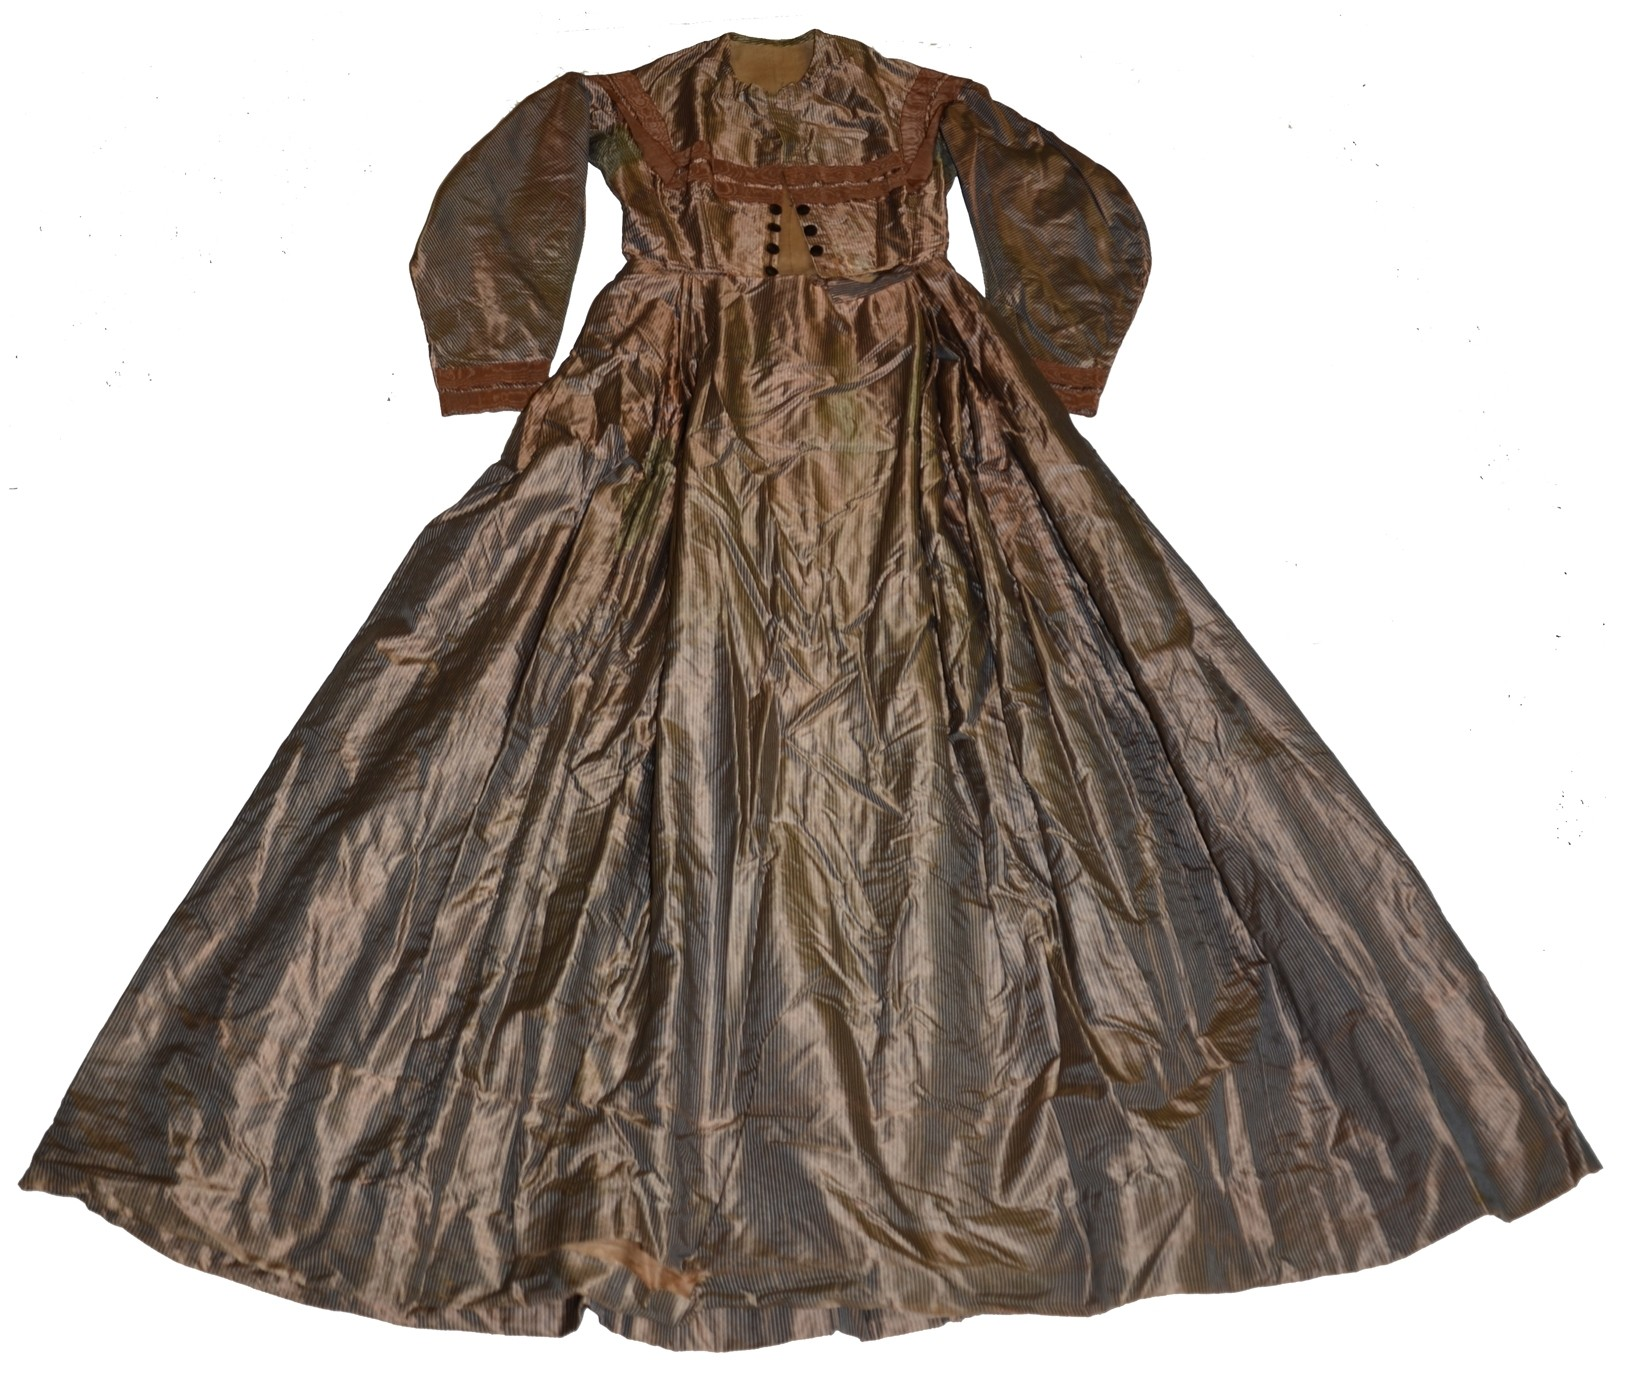 IRIDESCENT COPPER AND BLUE STRIPED SILK TAFFETA DRESS C. 1862-1865